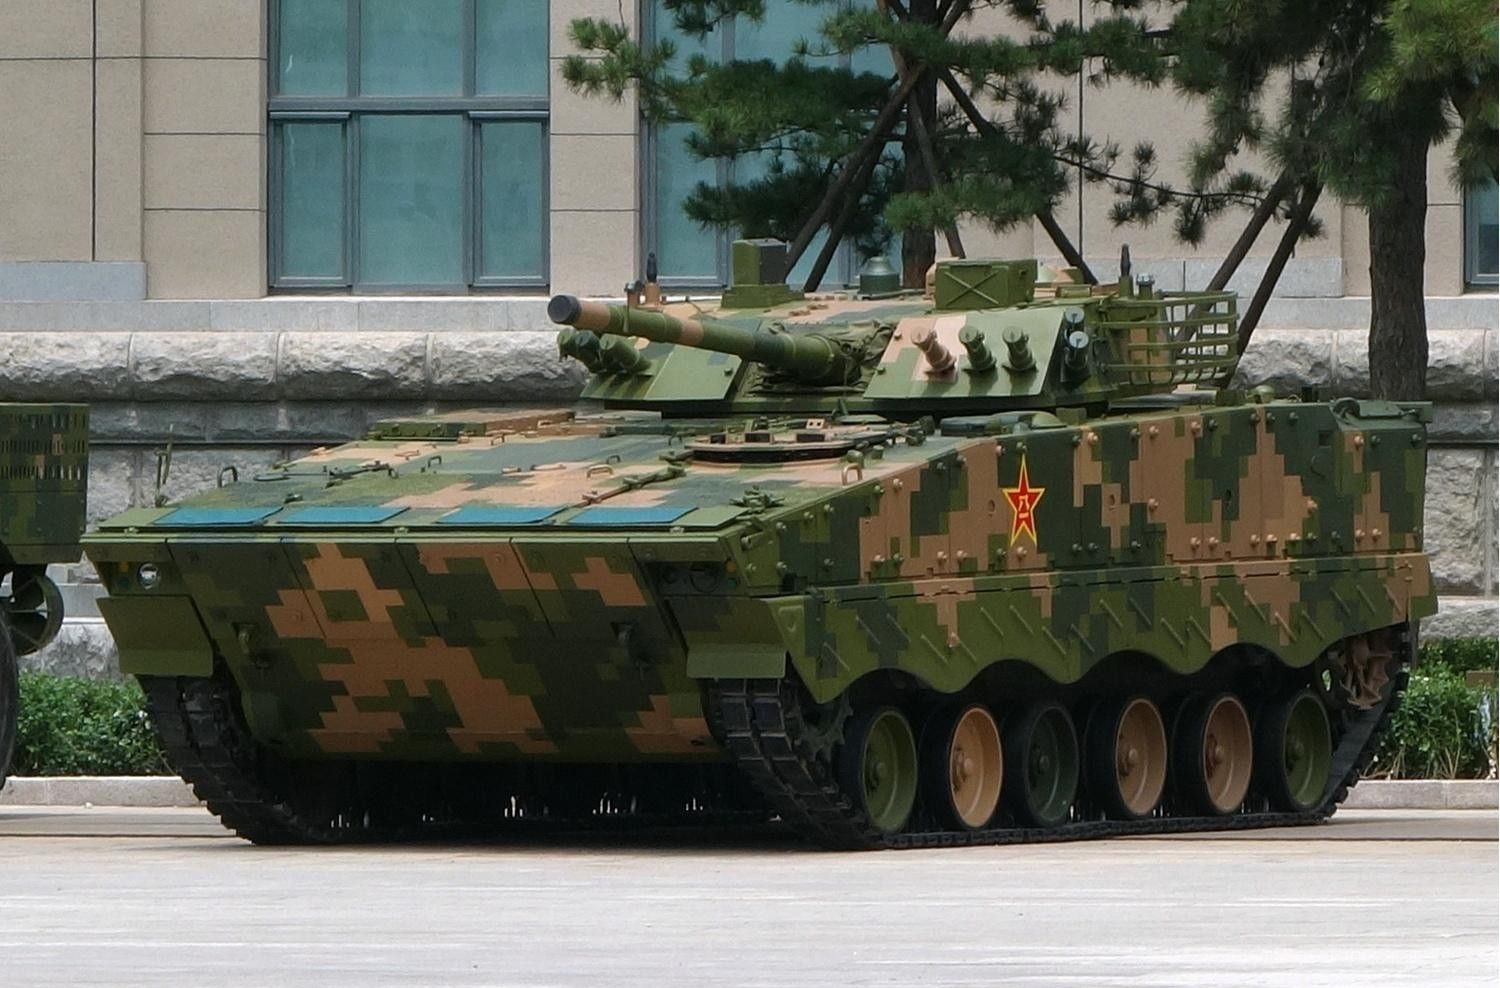 zbd 04 infantry fighting vehicle - HD 1500×988